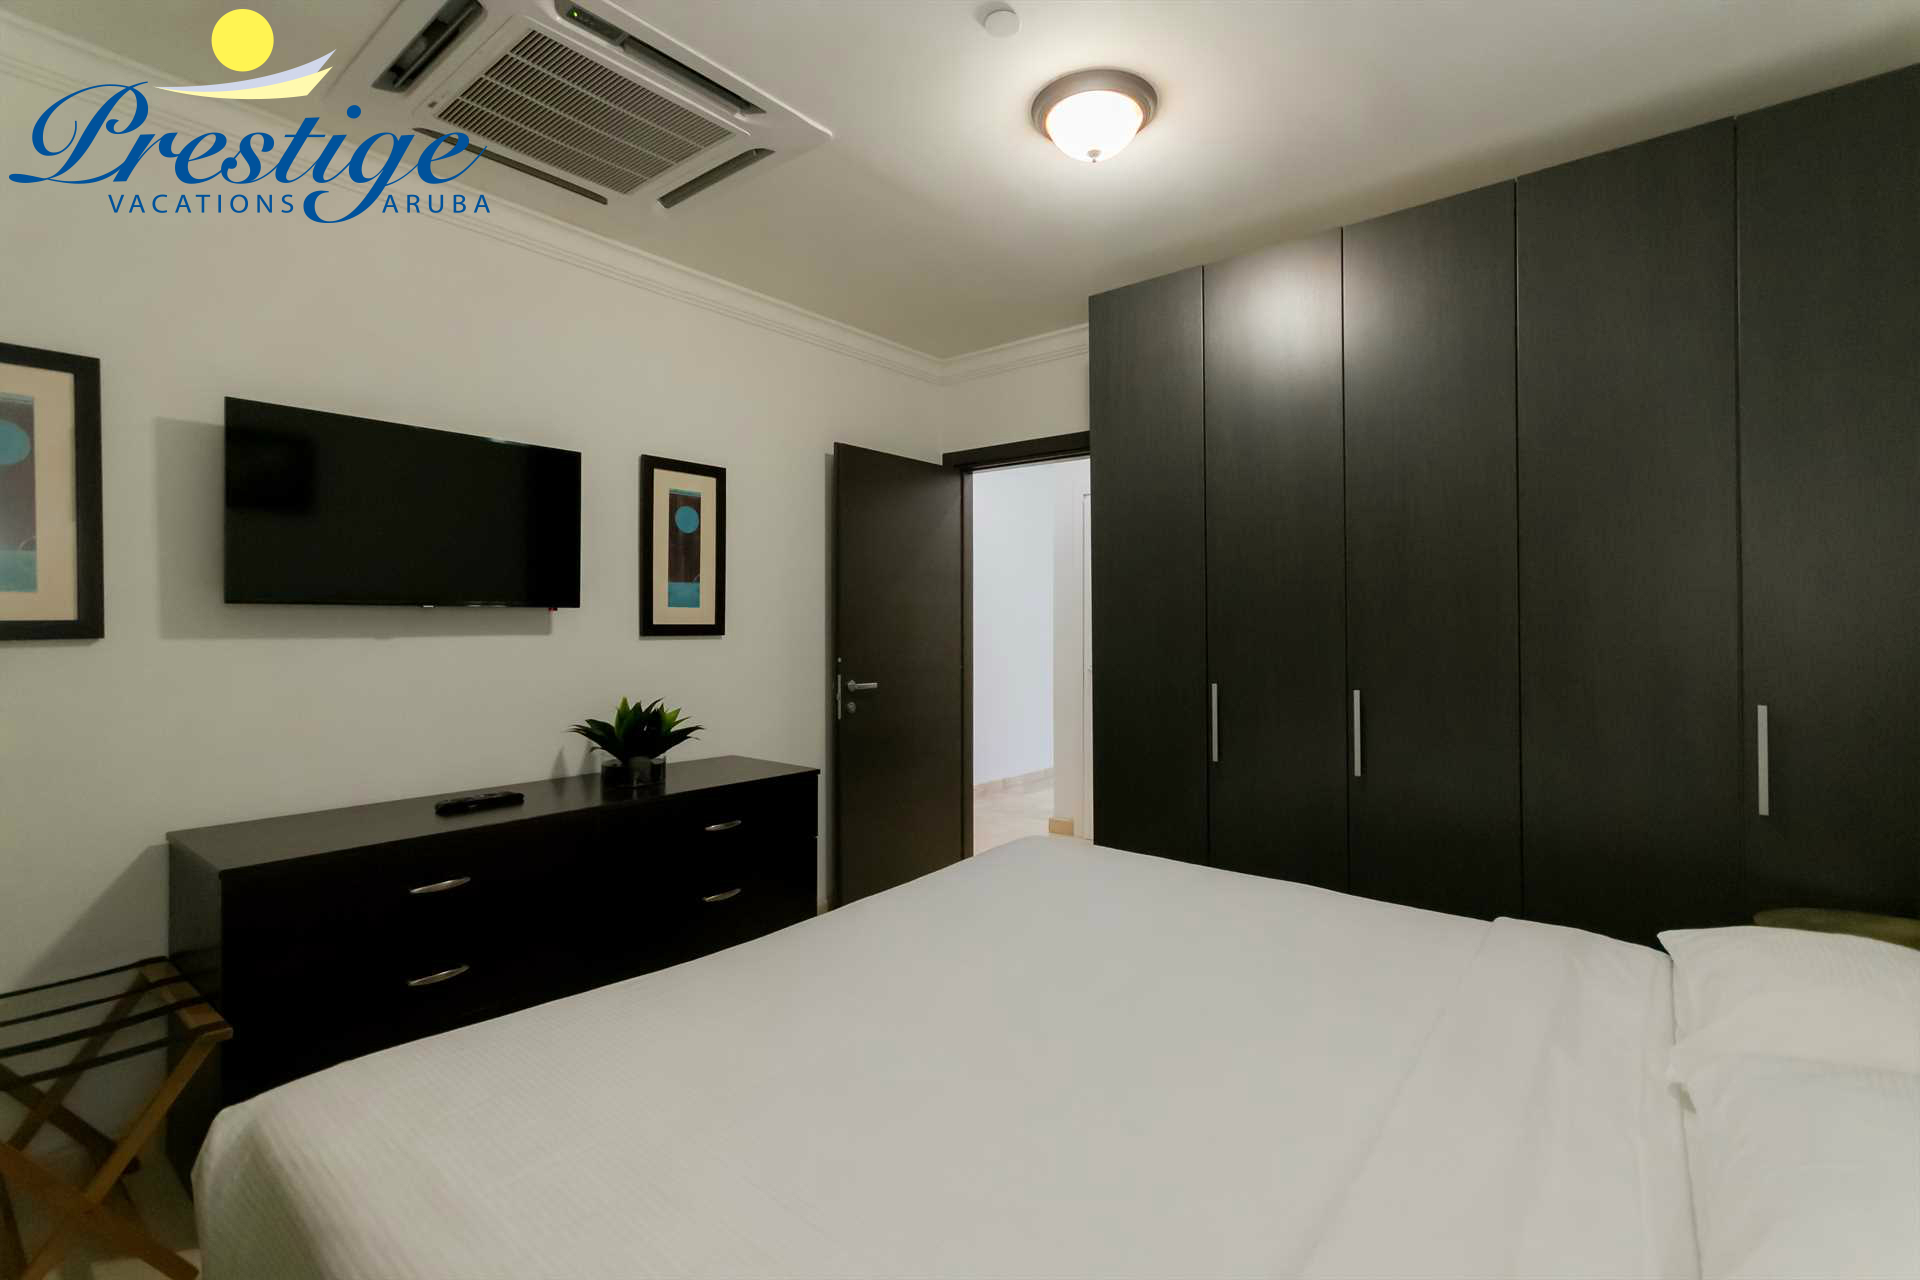 The master bedroom features a built-in closet and a TV